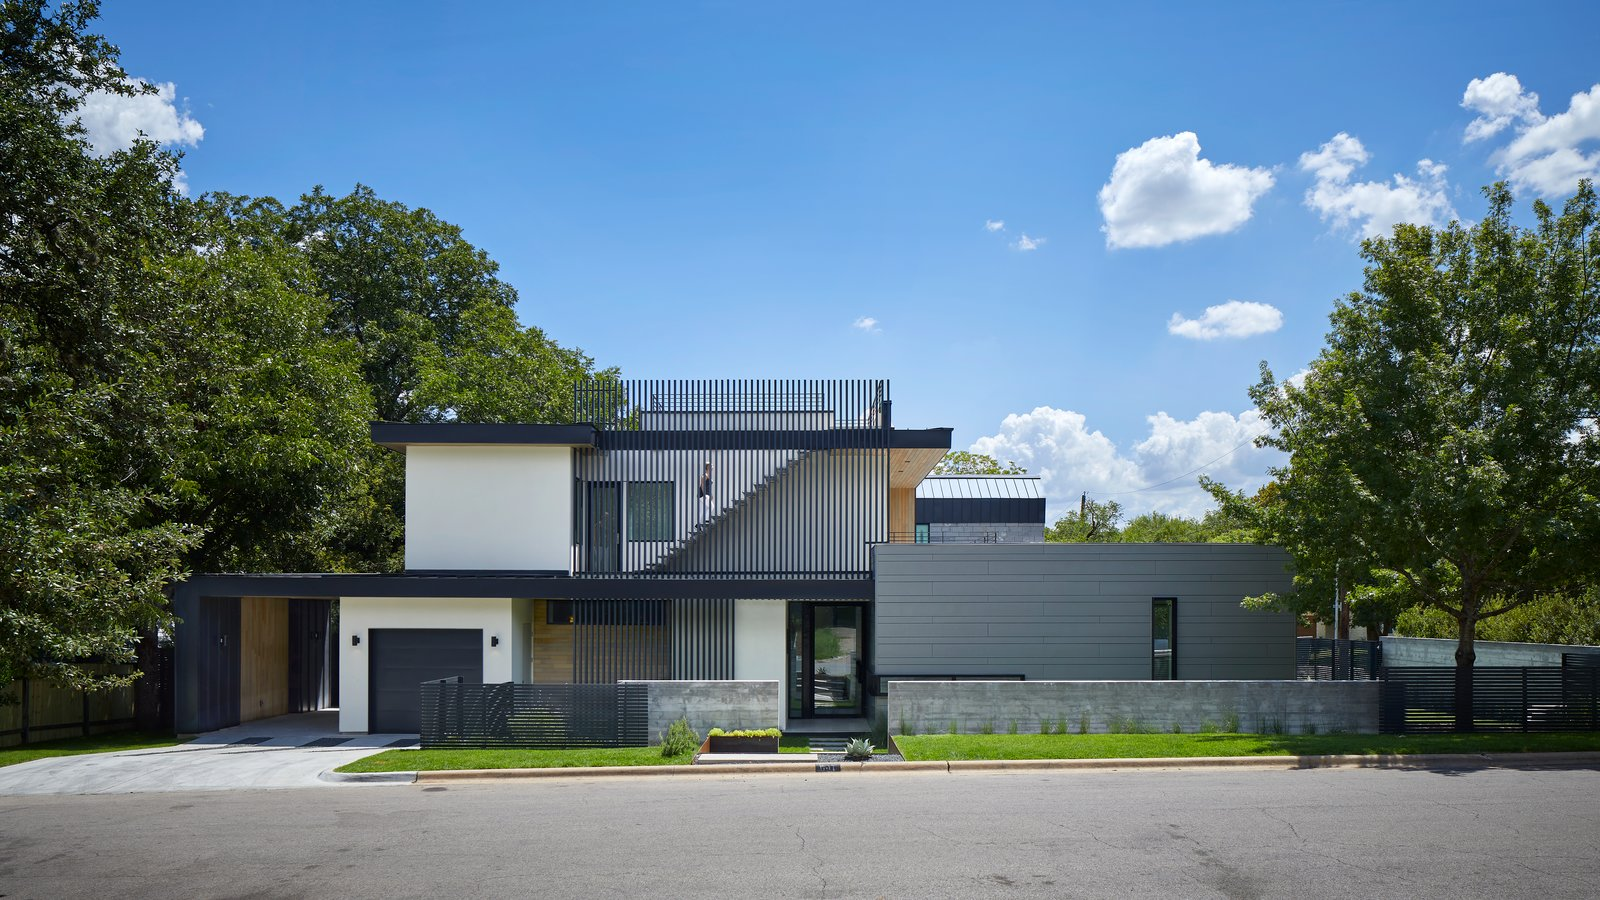 Exterior, Stucco, Hipped, Metal, Flat, Metal, House, Concrete, Glass, and Wood 007 House by Dick Clark + Associates  Exterior Flat Wood Hipped Photos from 007 House